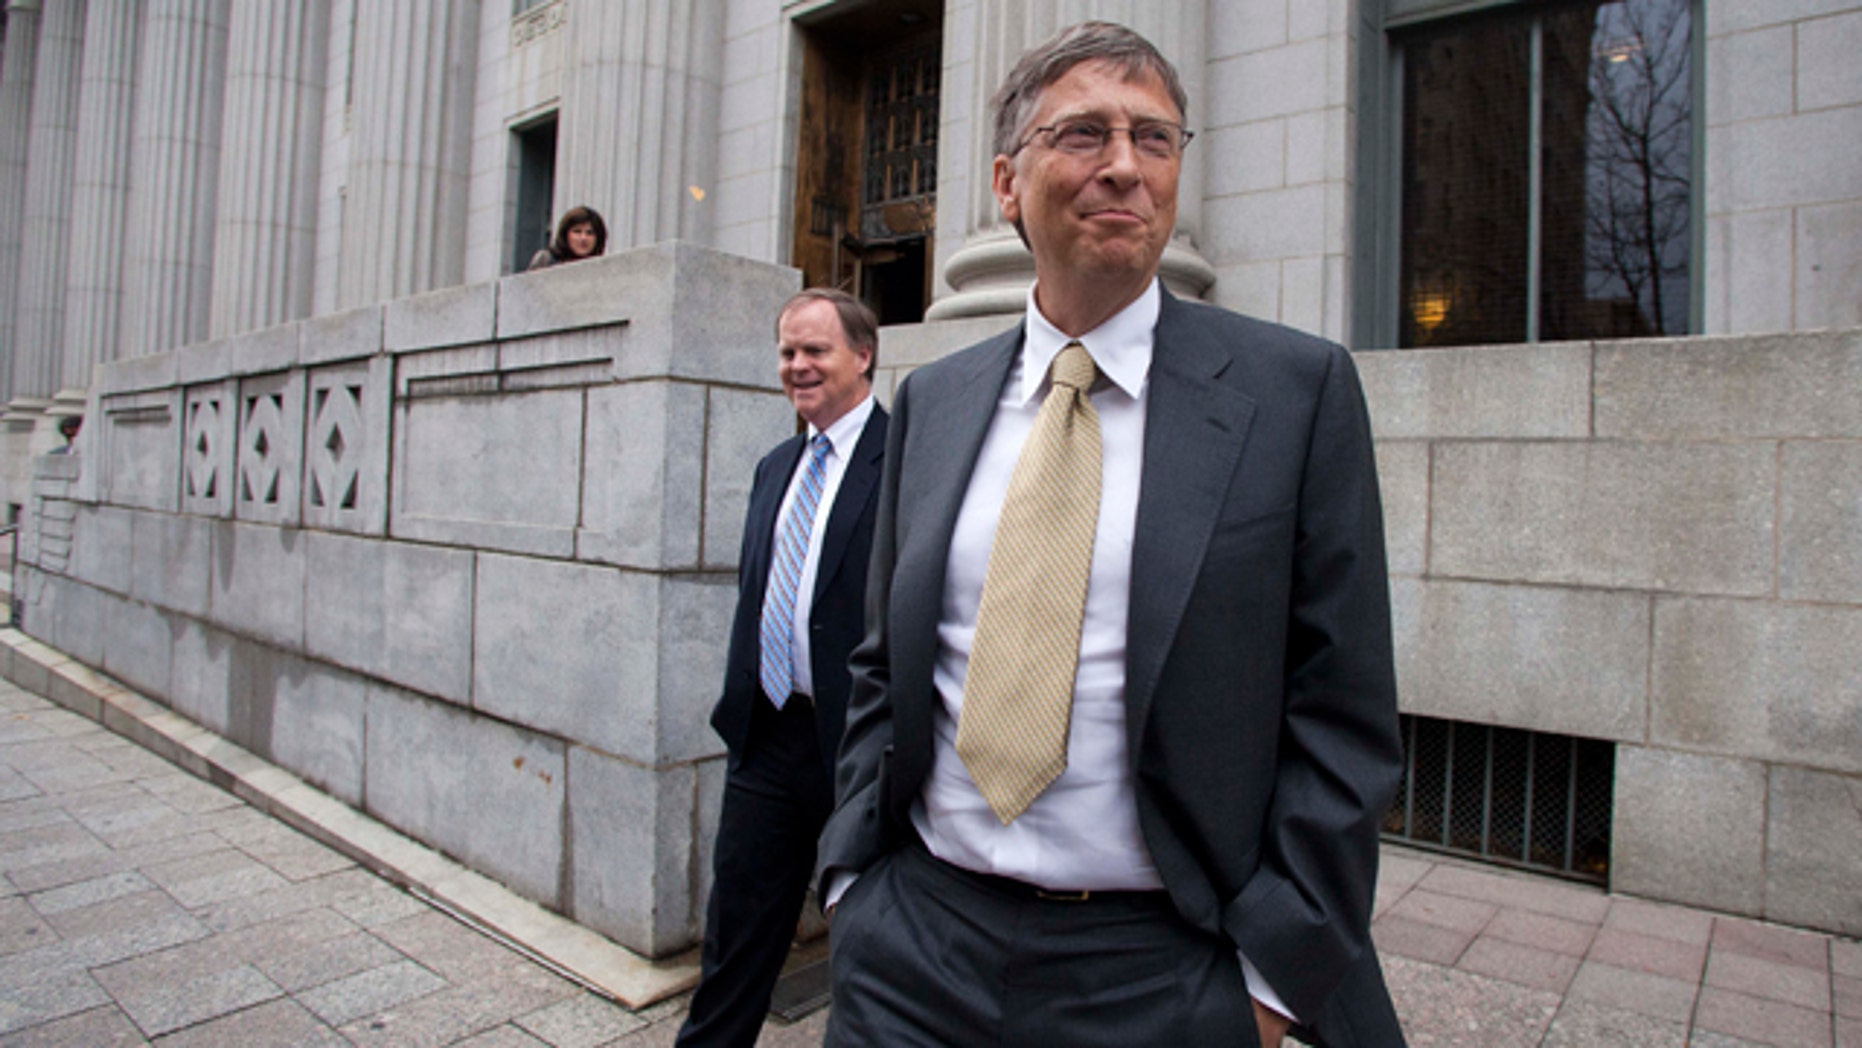 Nov.  21, 2011: Microsoft co-founder and chairman Bill Gates leaves the Frank E. Moss federal courthouse in Salt Lake City. Gates testified in a $1 billion antitrust lawsuit brought by Novell Inc.